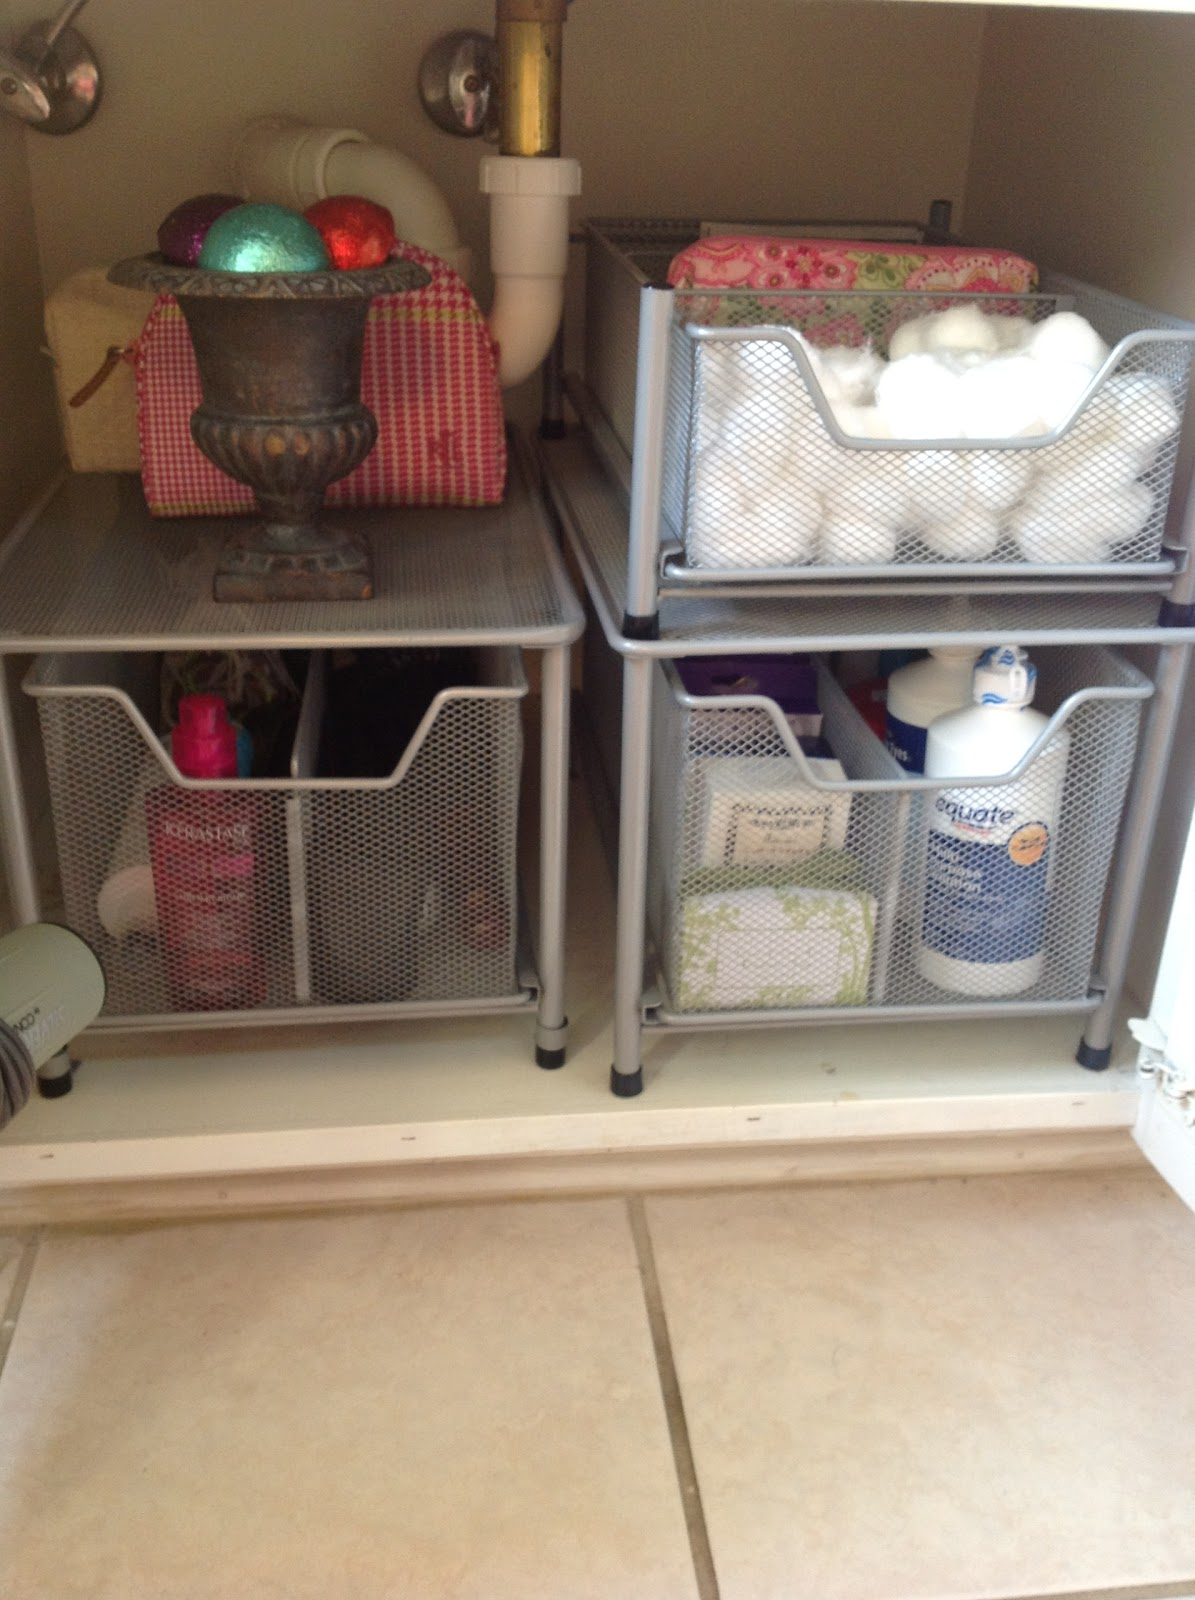 o is for organize under the bathroom sink bathroom storage bath accessories amp bathroom organizers